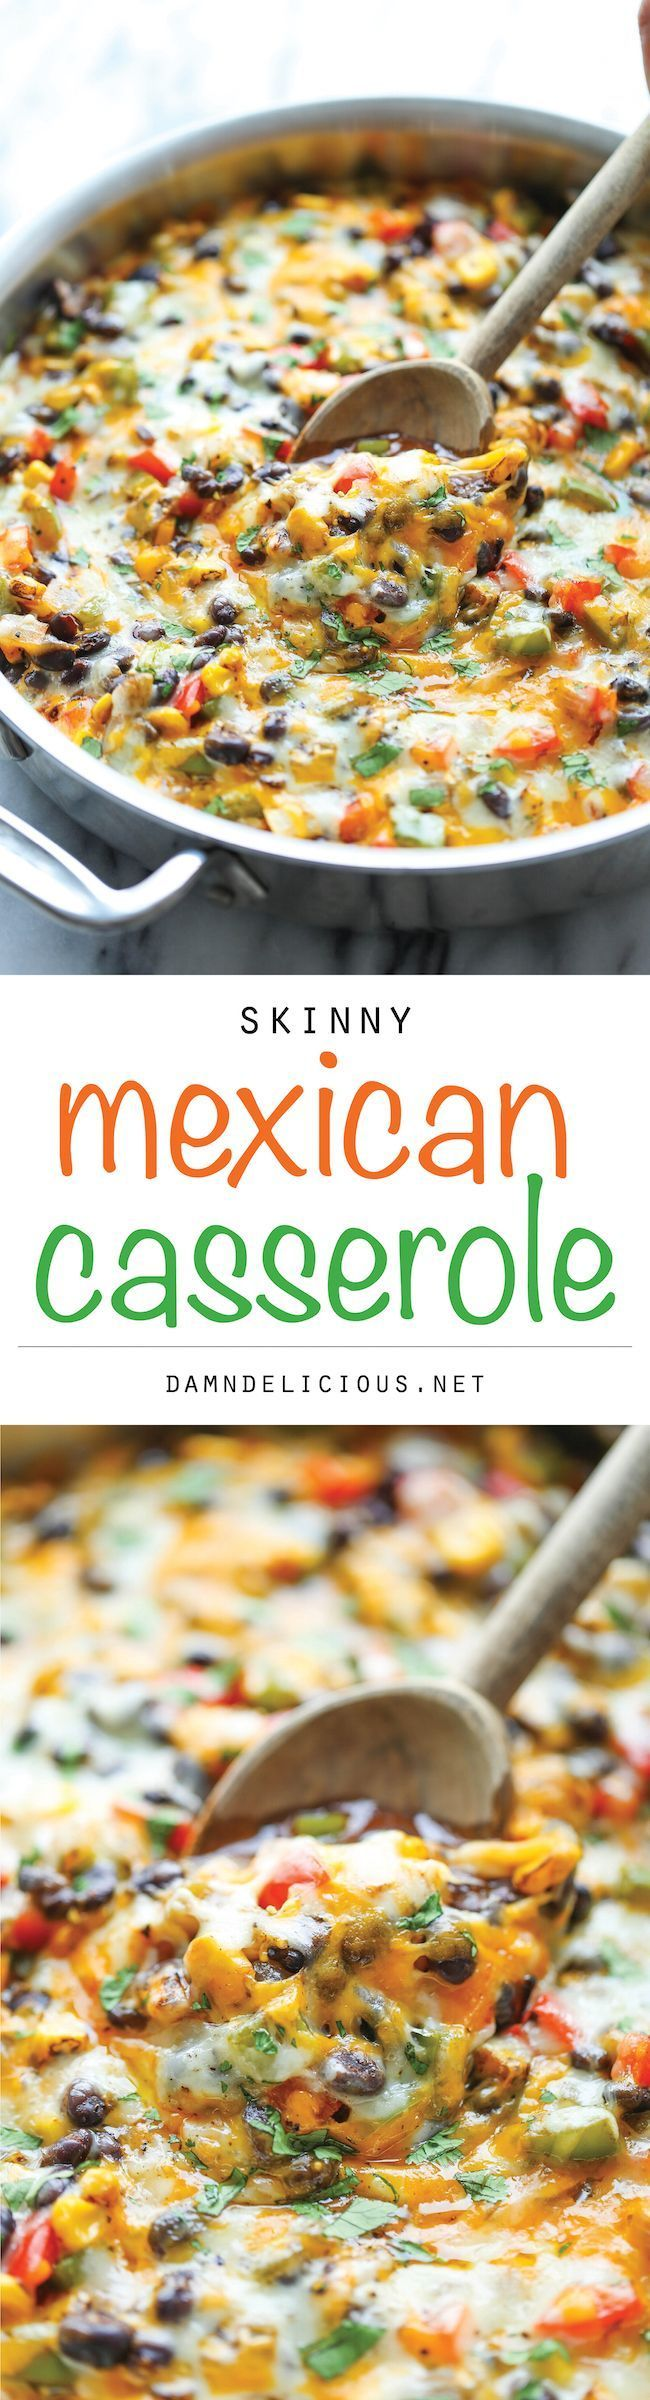 Skinny Mexican Casserole - A cheesy comforting casserole that you can enjoy guilt-free, chockfull of veggies and whole wheat tortilla. You can't beat that!